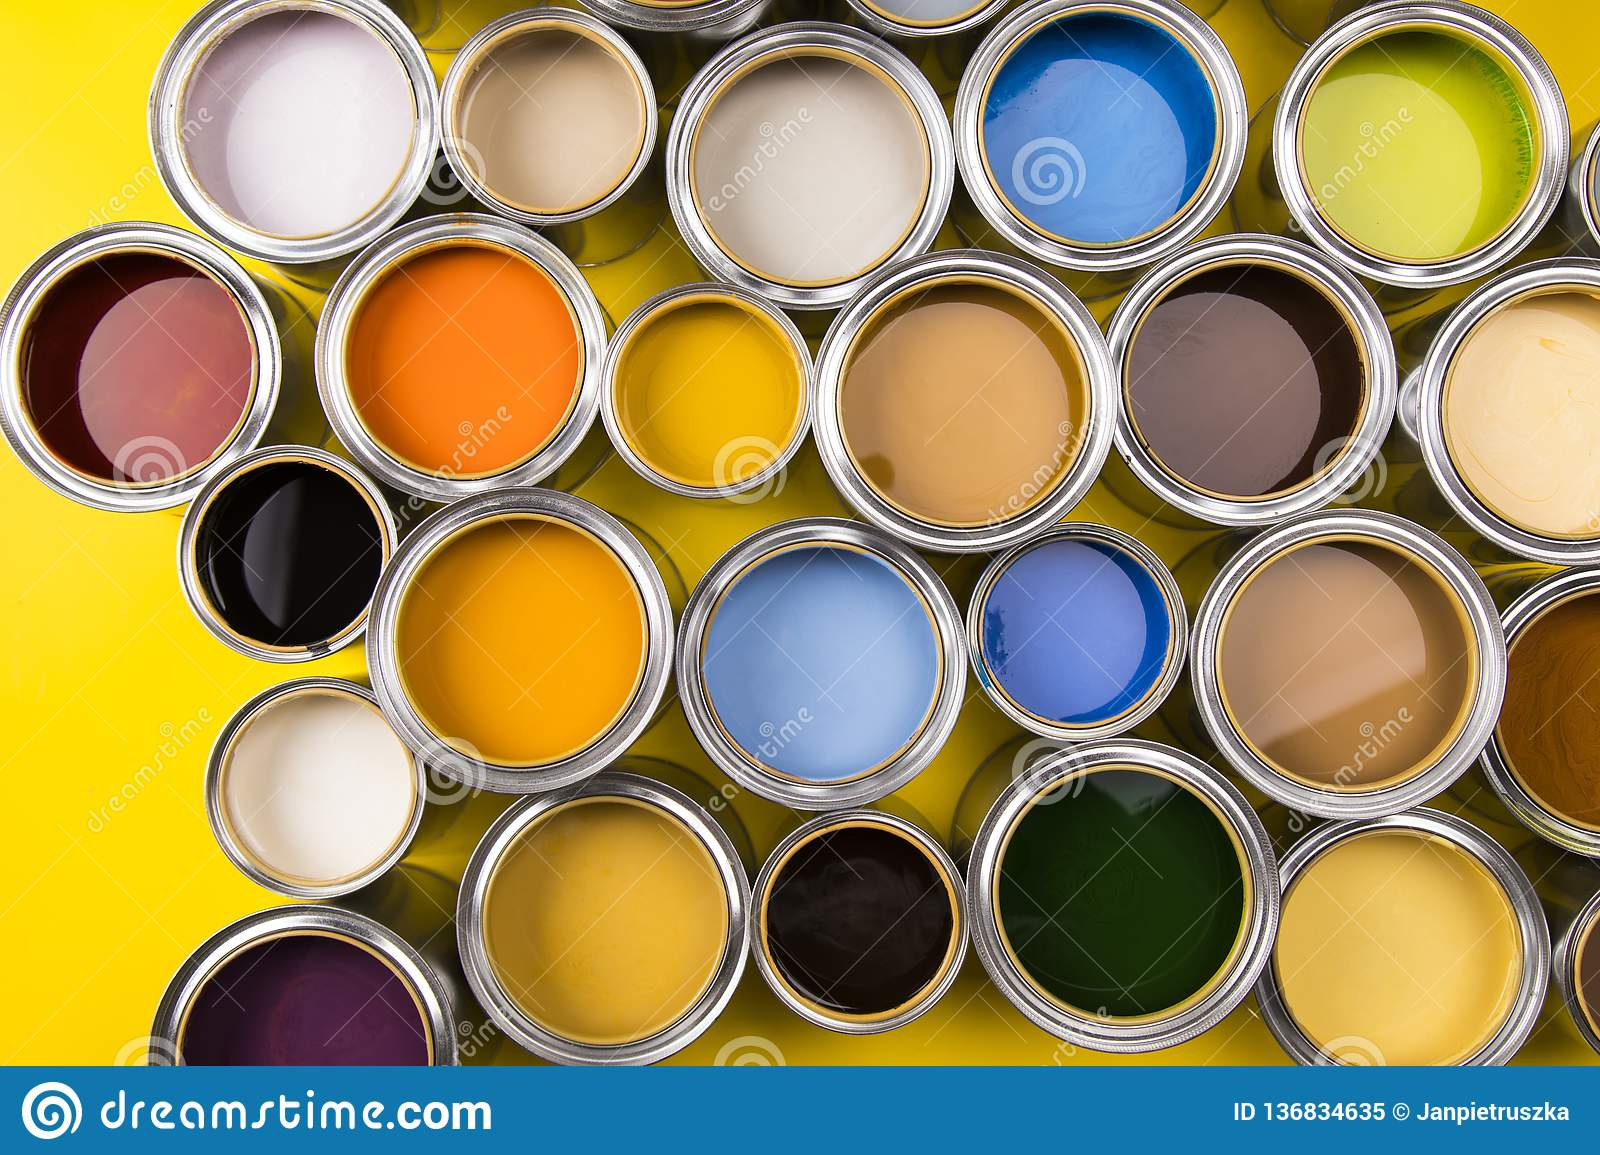 Paint cans color palette, yellow background